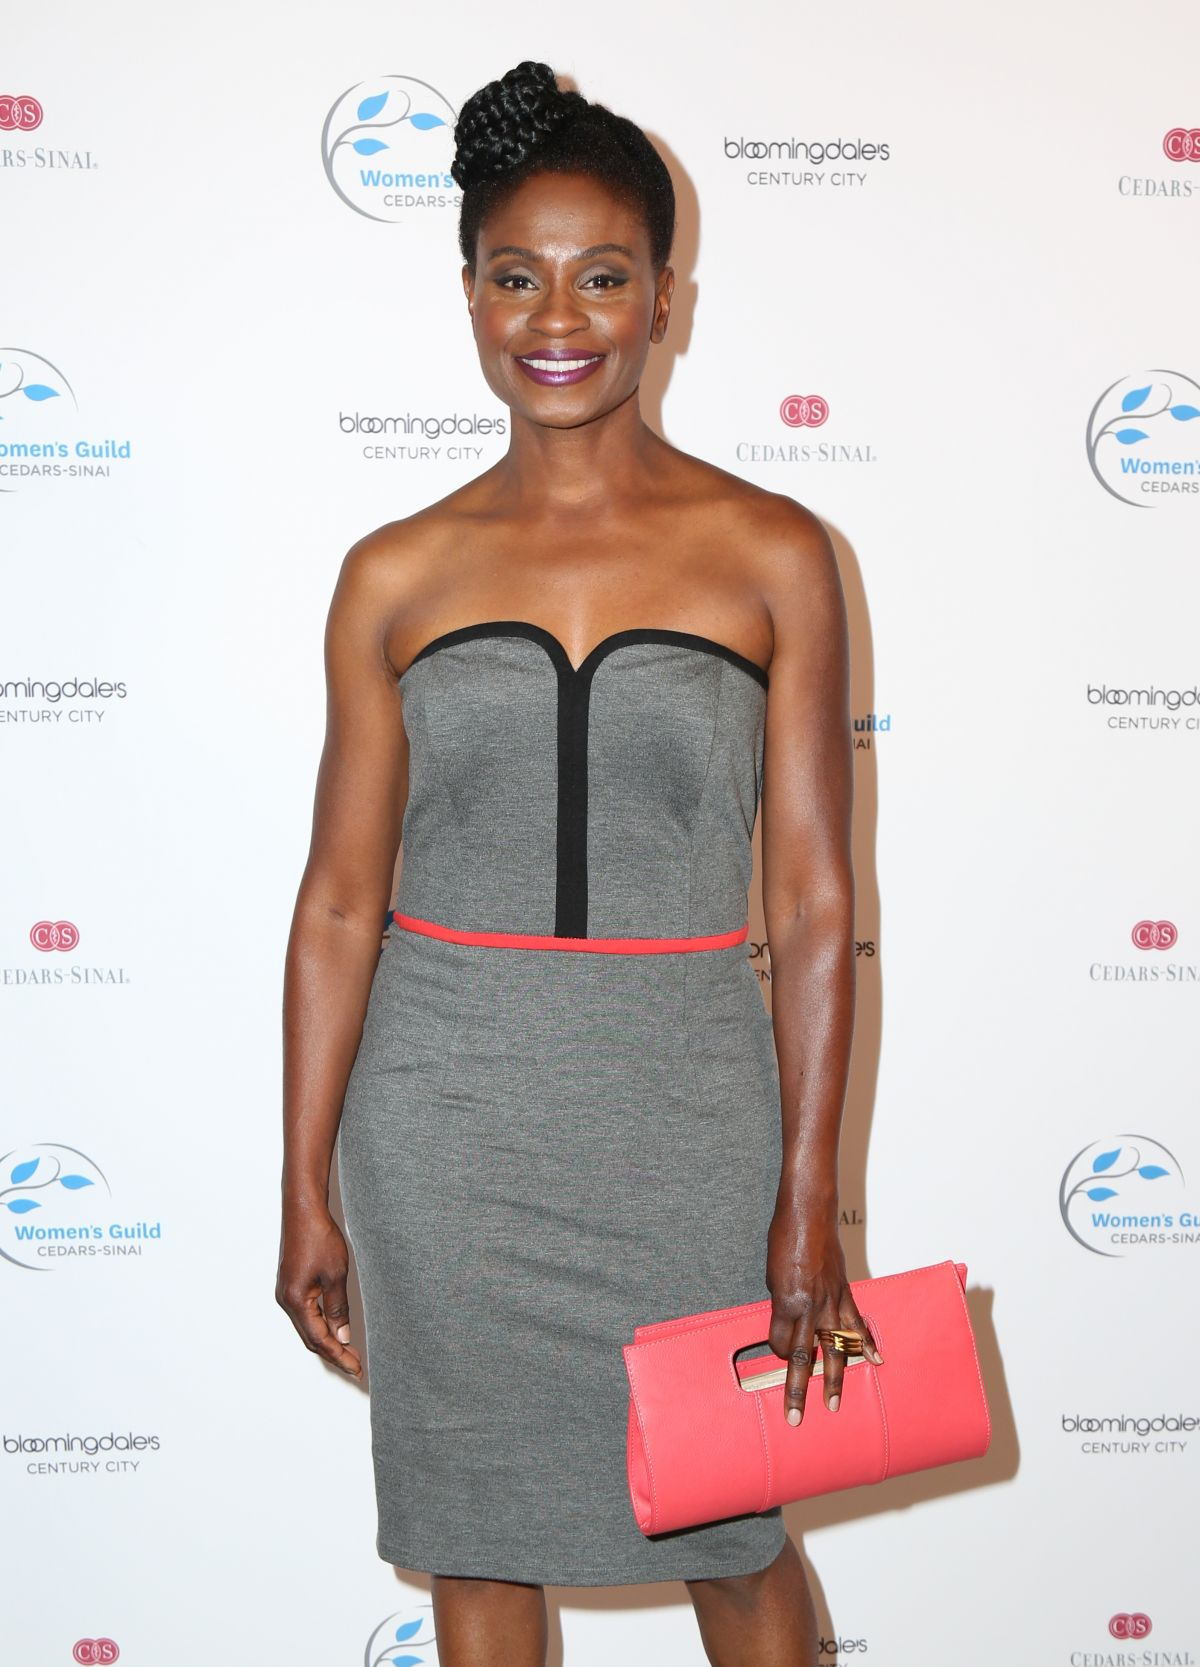 ADINA PORTER at Women's Guild Cedars Sinai Annual Spring Luncheon in Los Angeles 04/20/2017   adina-porter-at-women-s-guild-cedars-sinai-annual-spring-luncheon-in-los-angeles-04-20-2017_5